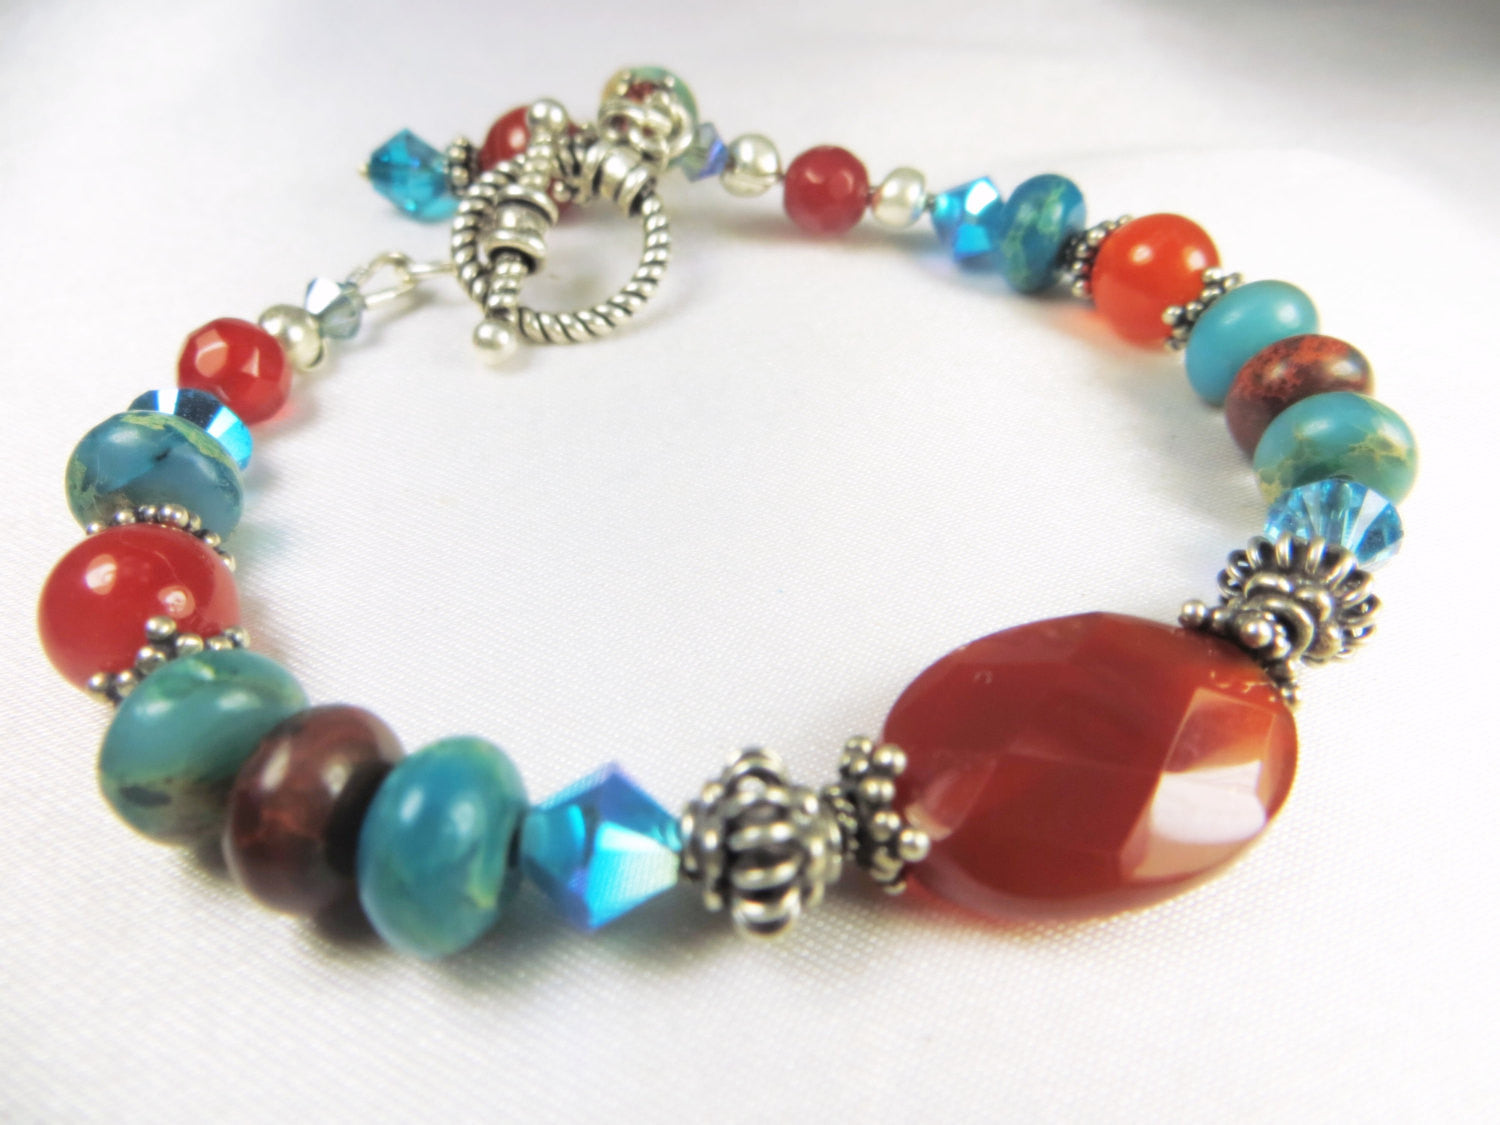 Carnelian Faceted Stone and Turquoise Bracelet with all Sterling Silver metal findings - Odyssey Creations